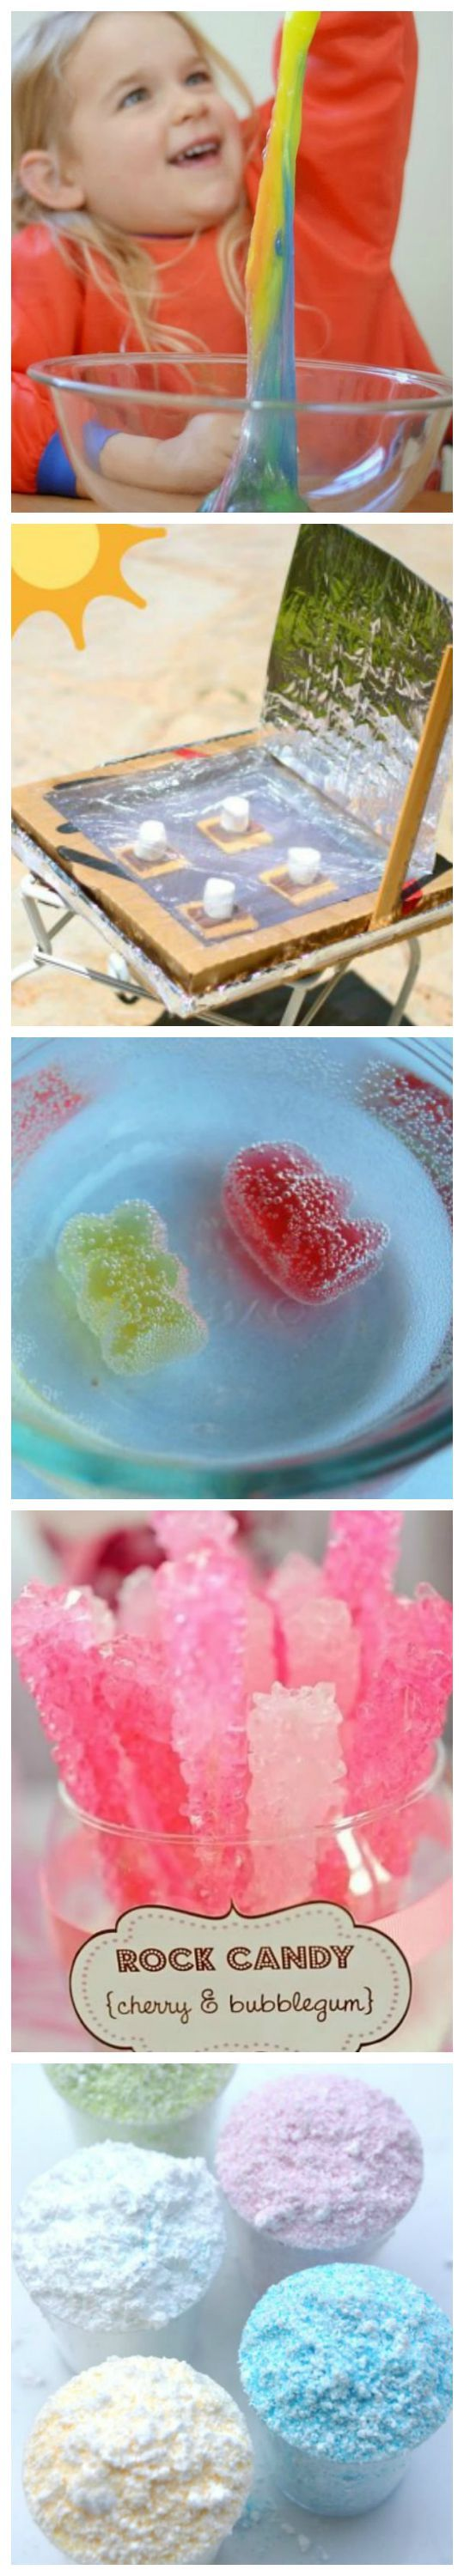 18 Cool Science Experiments Your Children Can Eat!